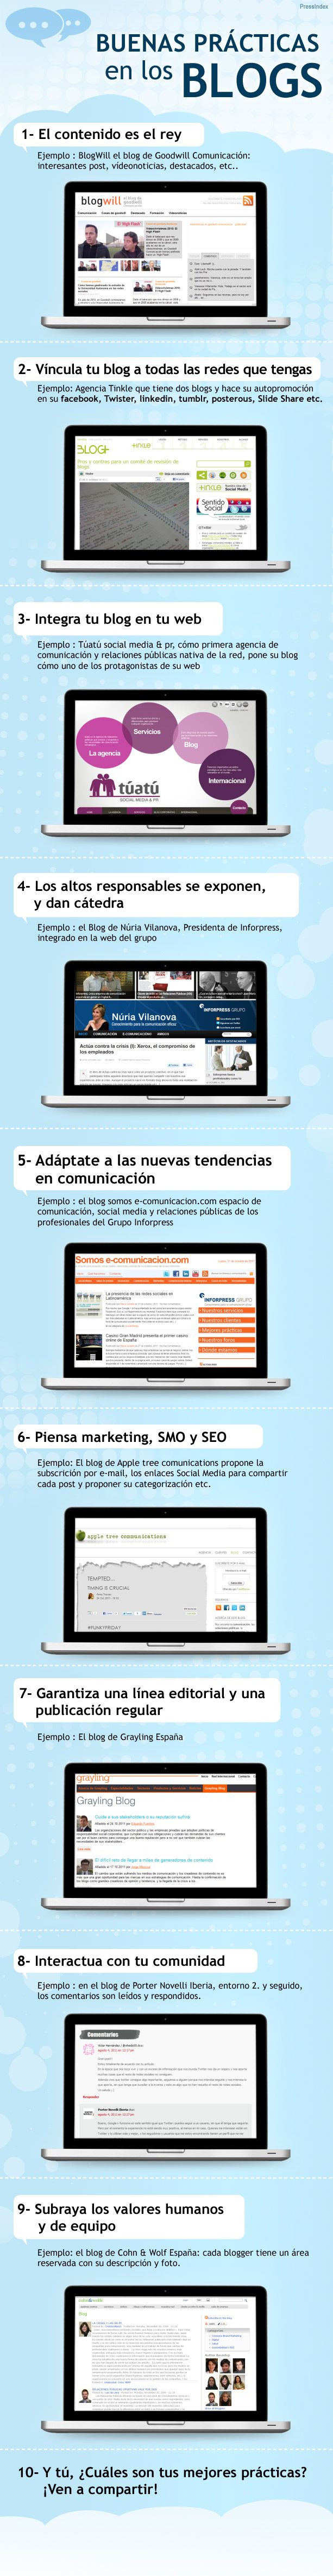 Buenas prácticas en los blogs #infografia #infographic #socialmedia #marketing